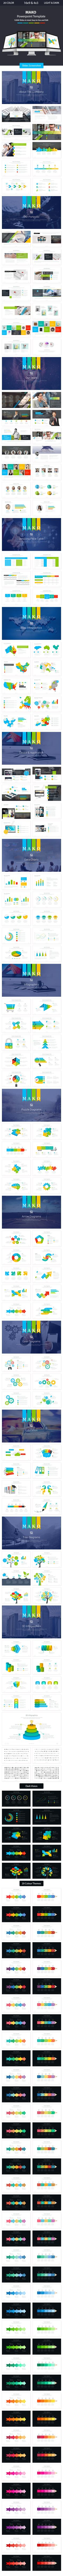 Mako Powerpoint Template #slides #design Download: http://graphicriver.net/item/mako-powerpoint-template/13628018?ref=ksioks